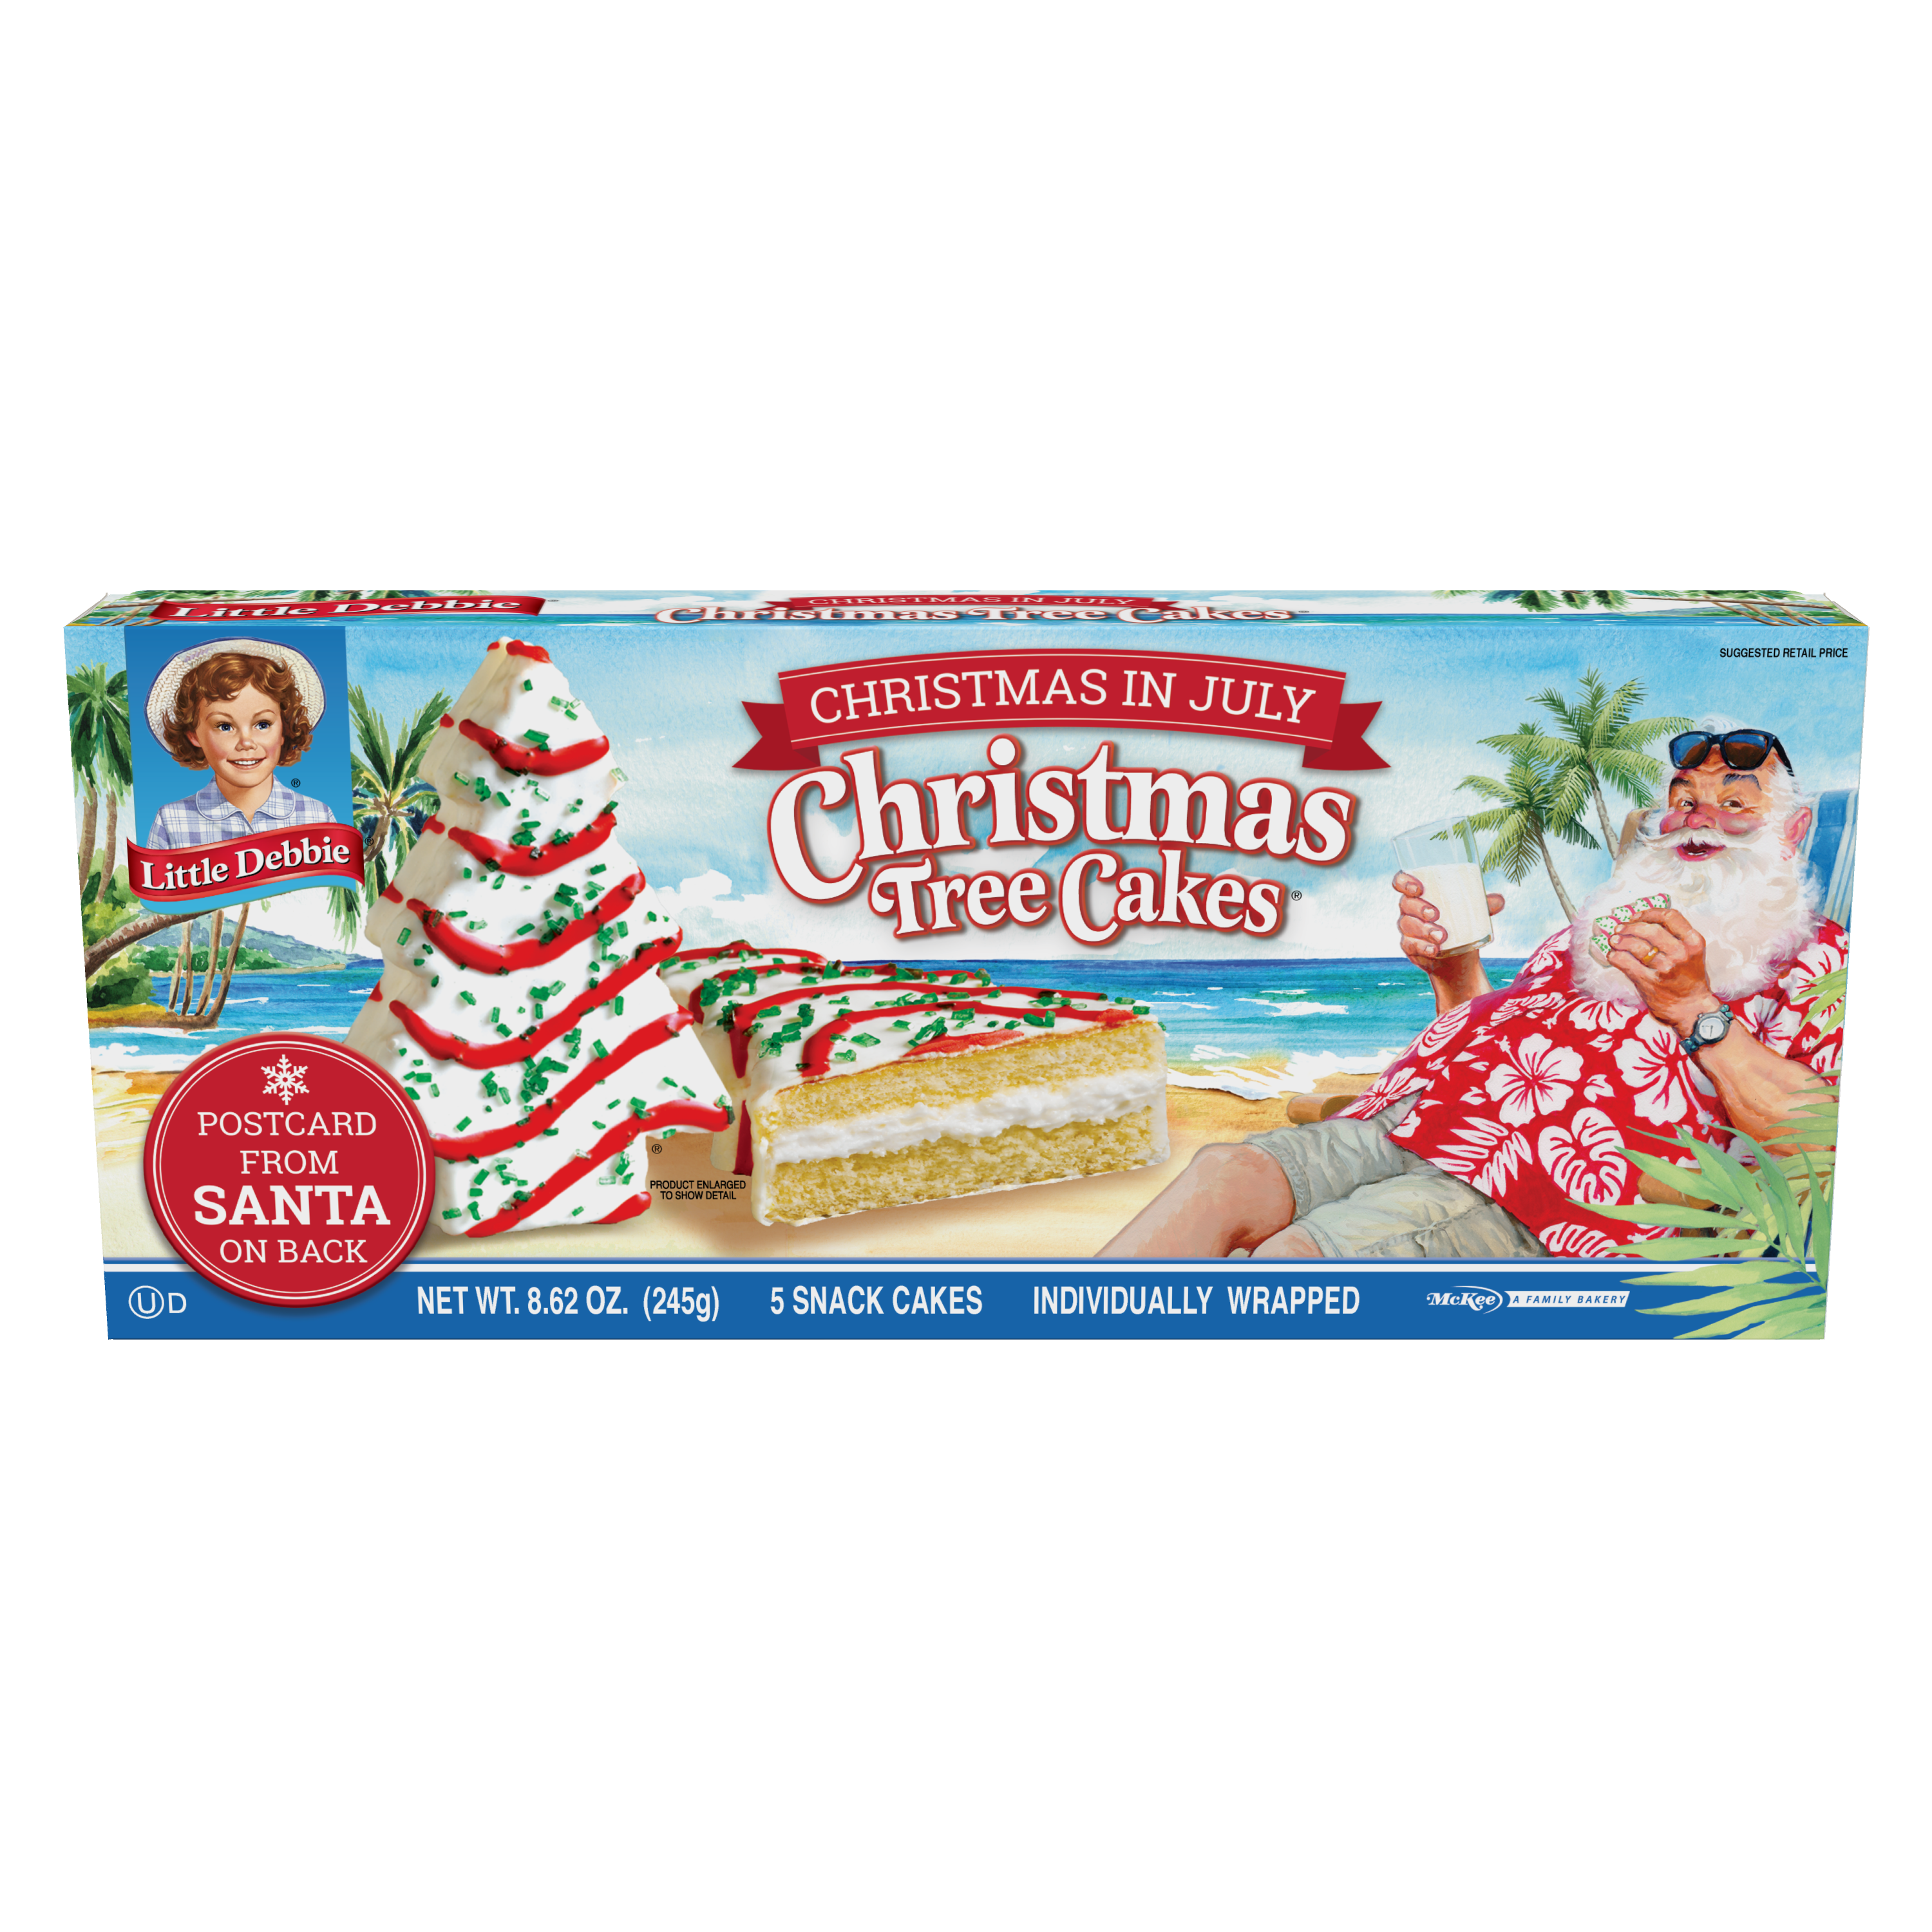 Little Debbie Is Selling Christmas Tree Cakes In July This Year